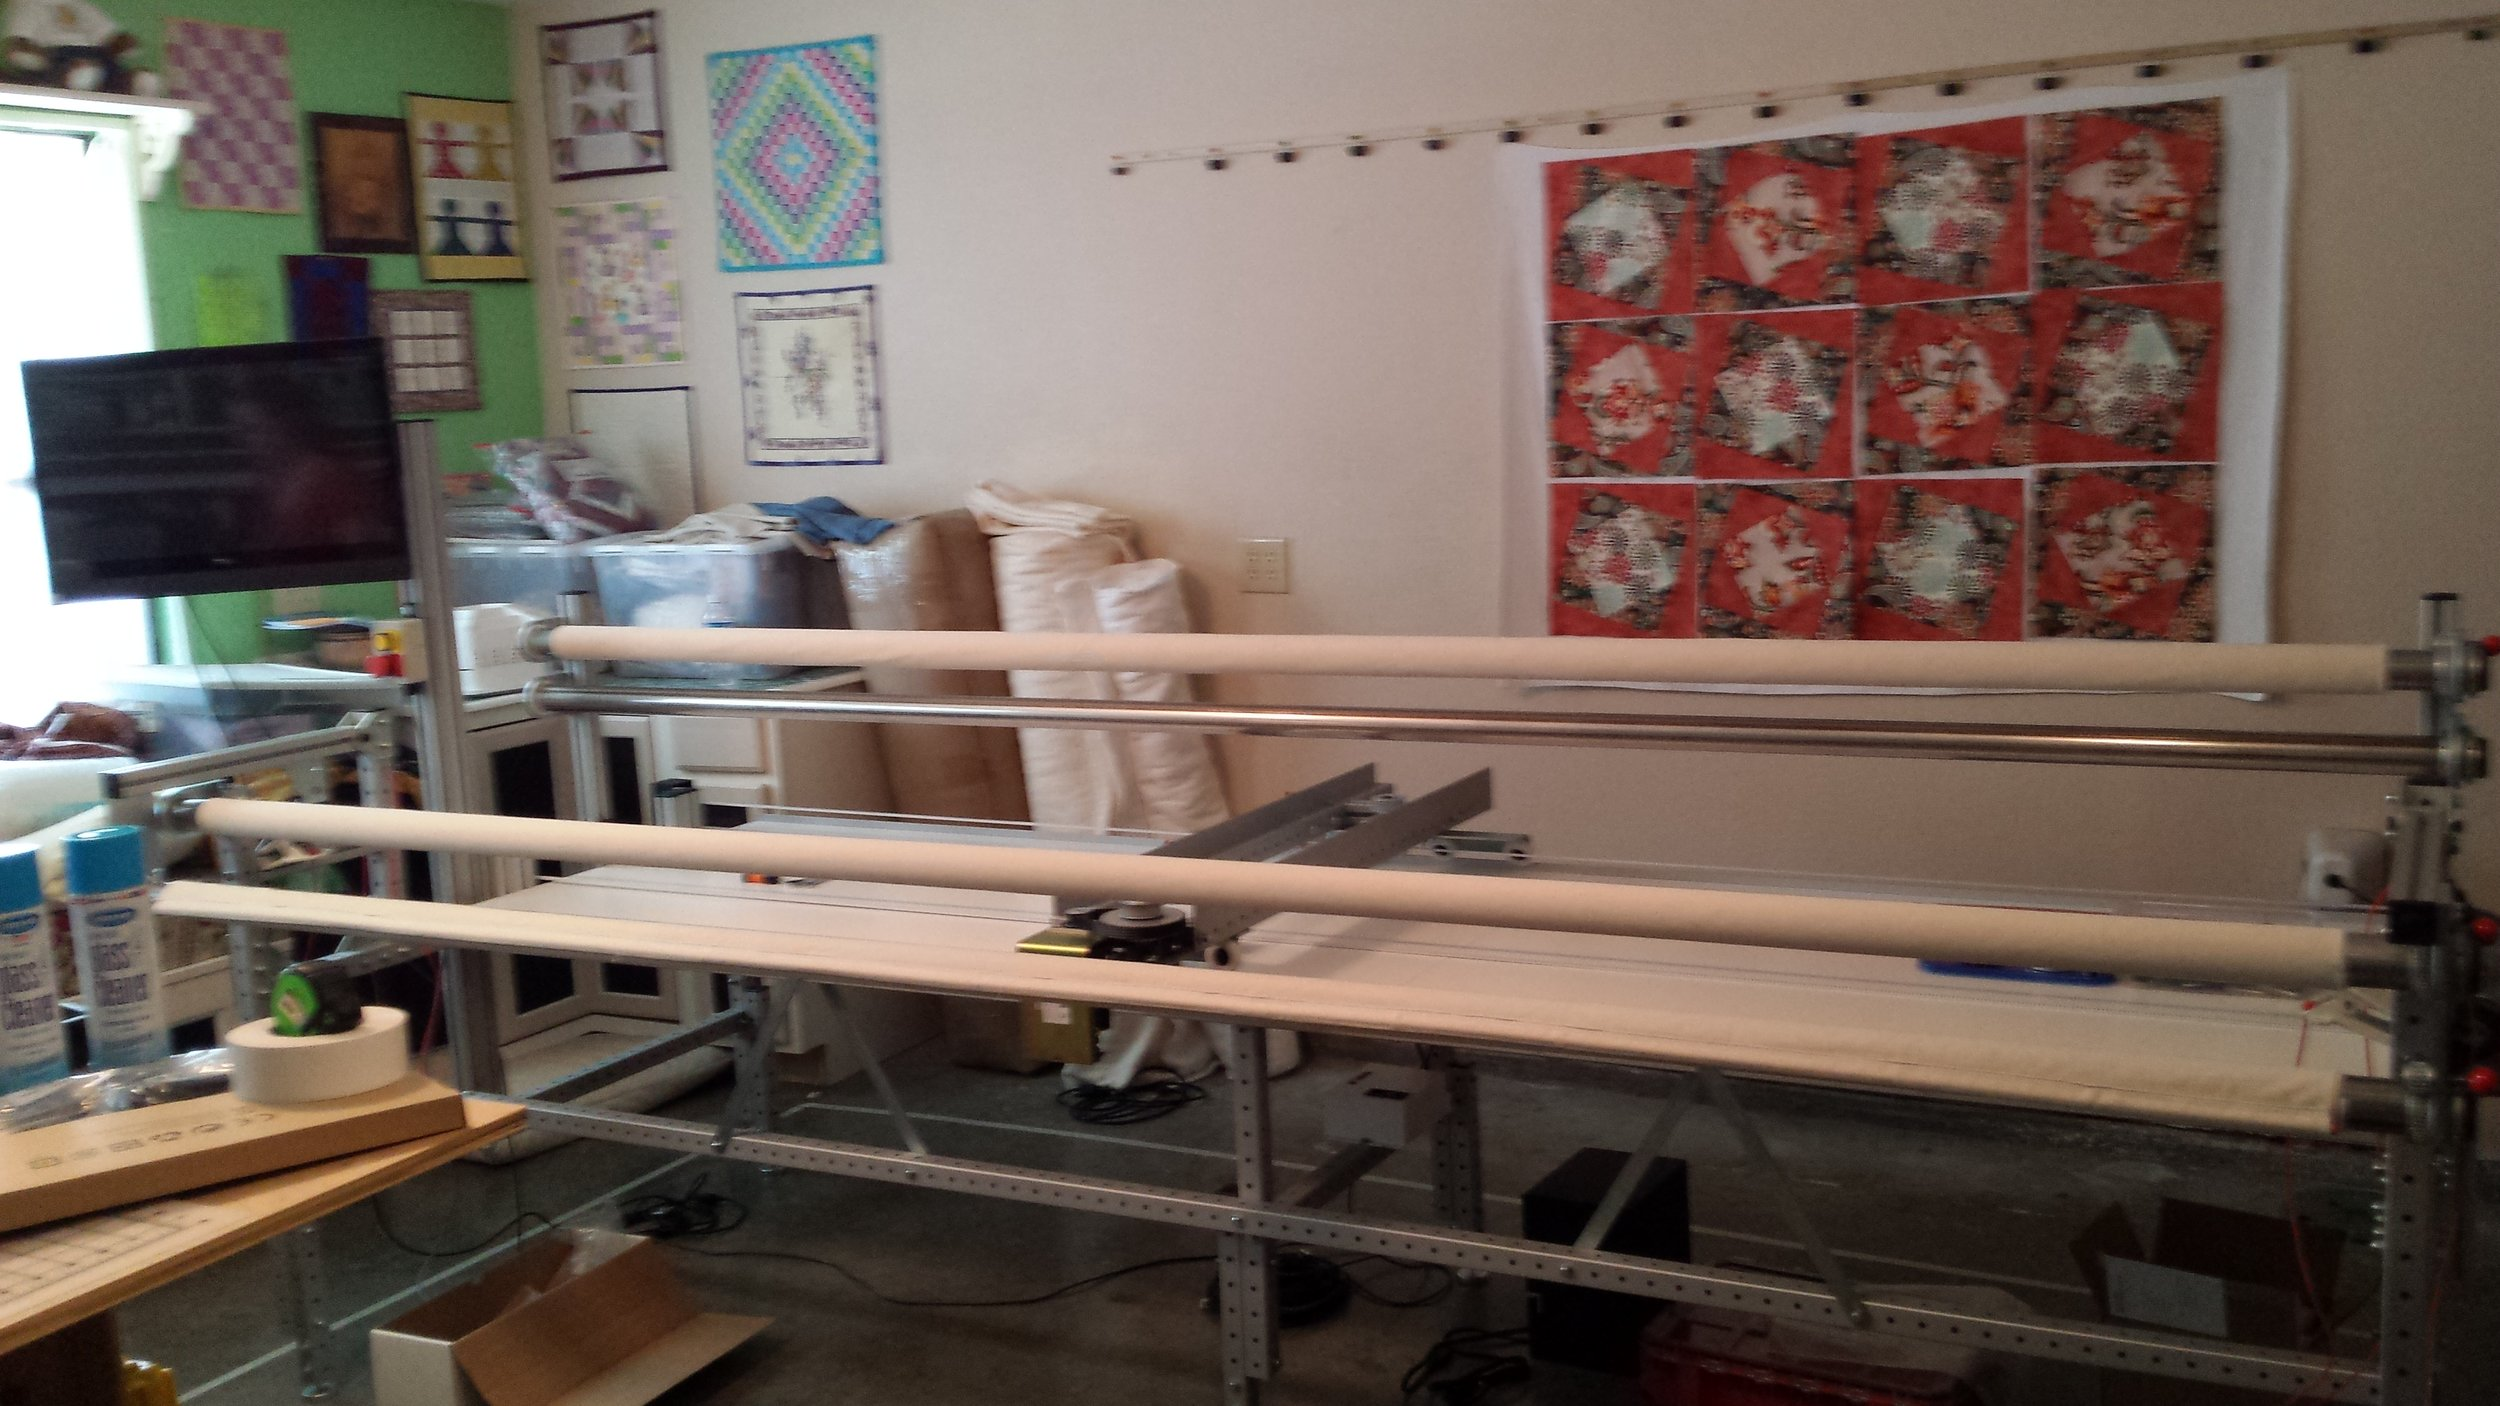 Our Long-arm quilting Machine, and you can see some of our studio.